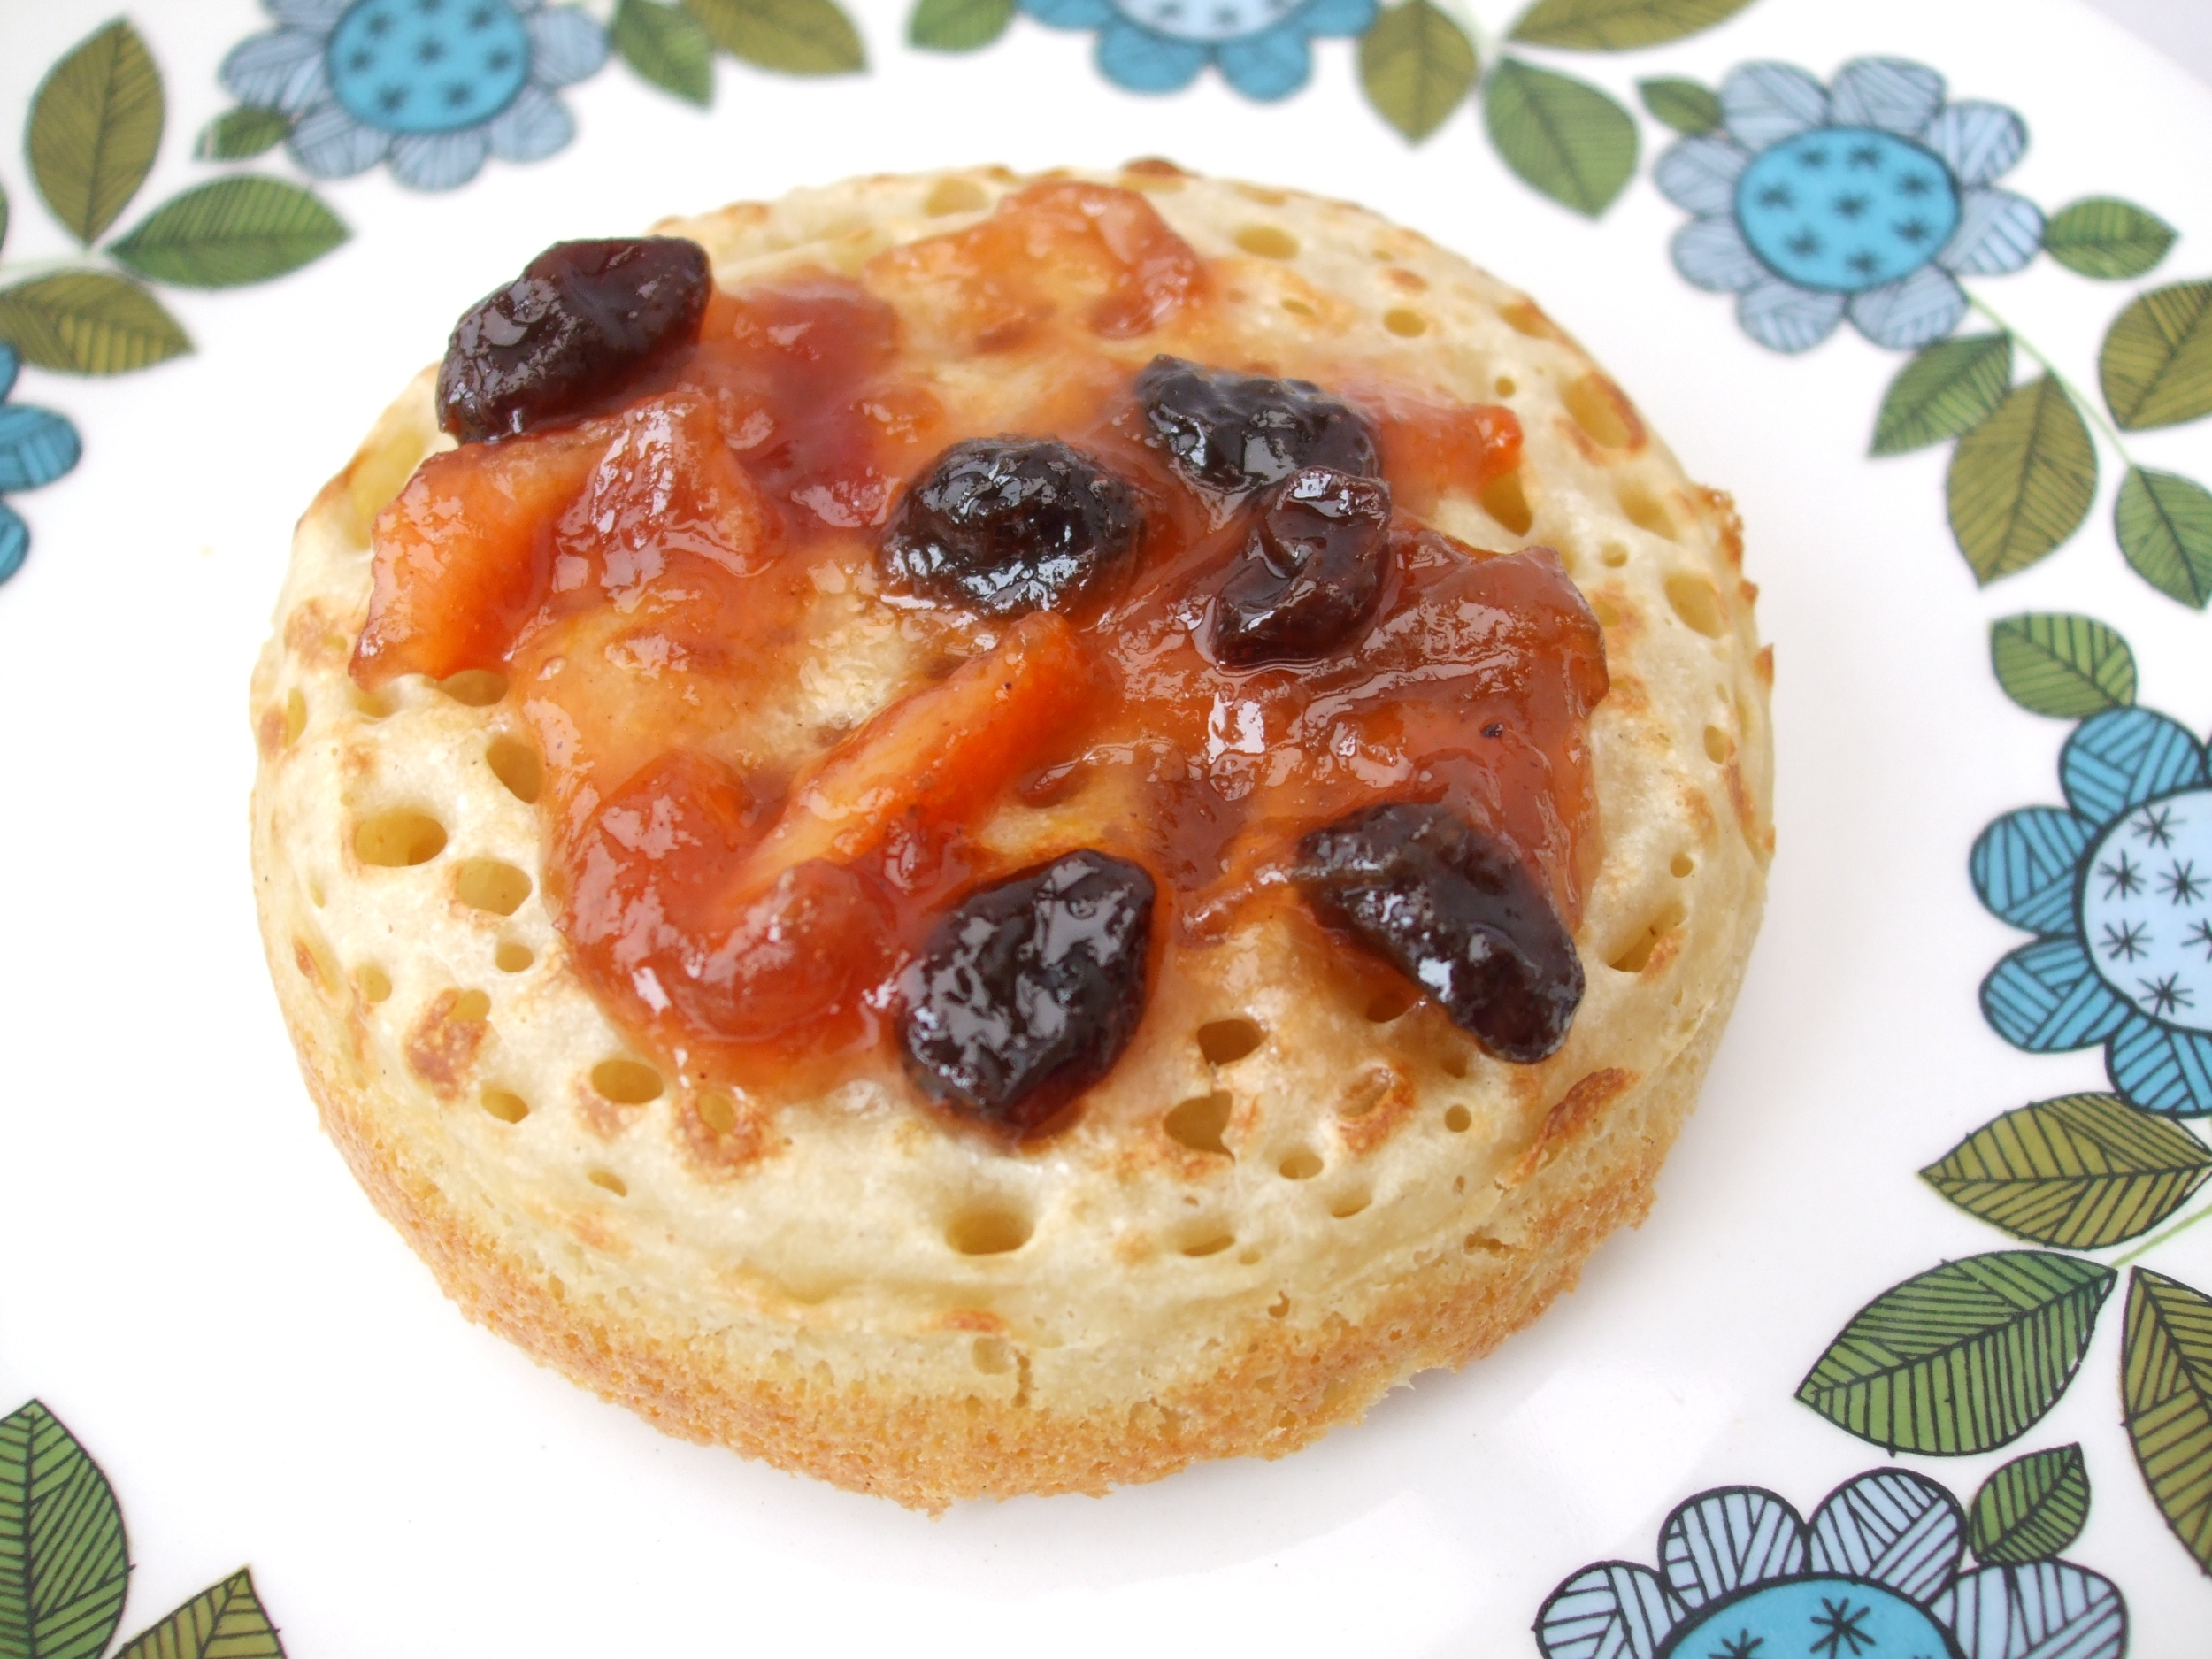 Home-made crumpet and rhubarb jam